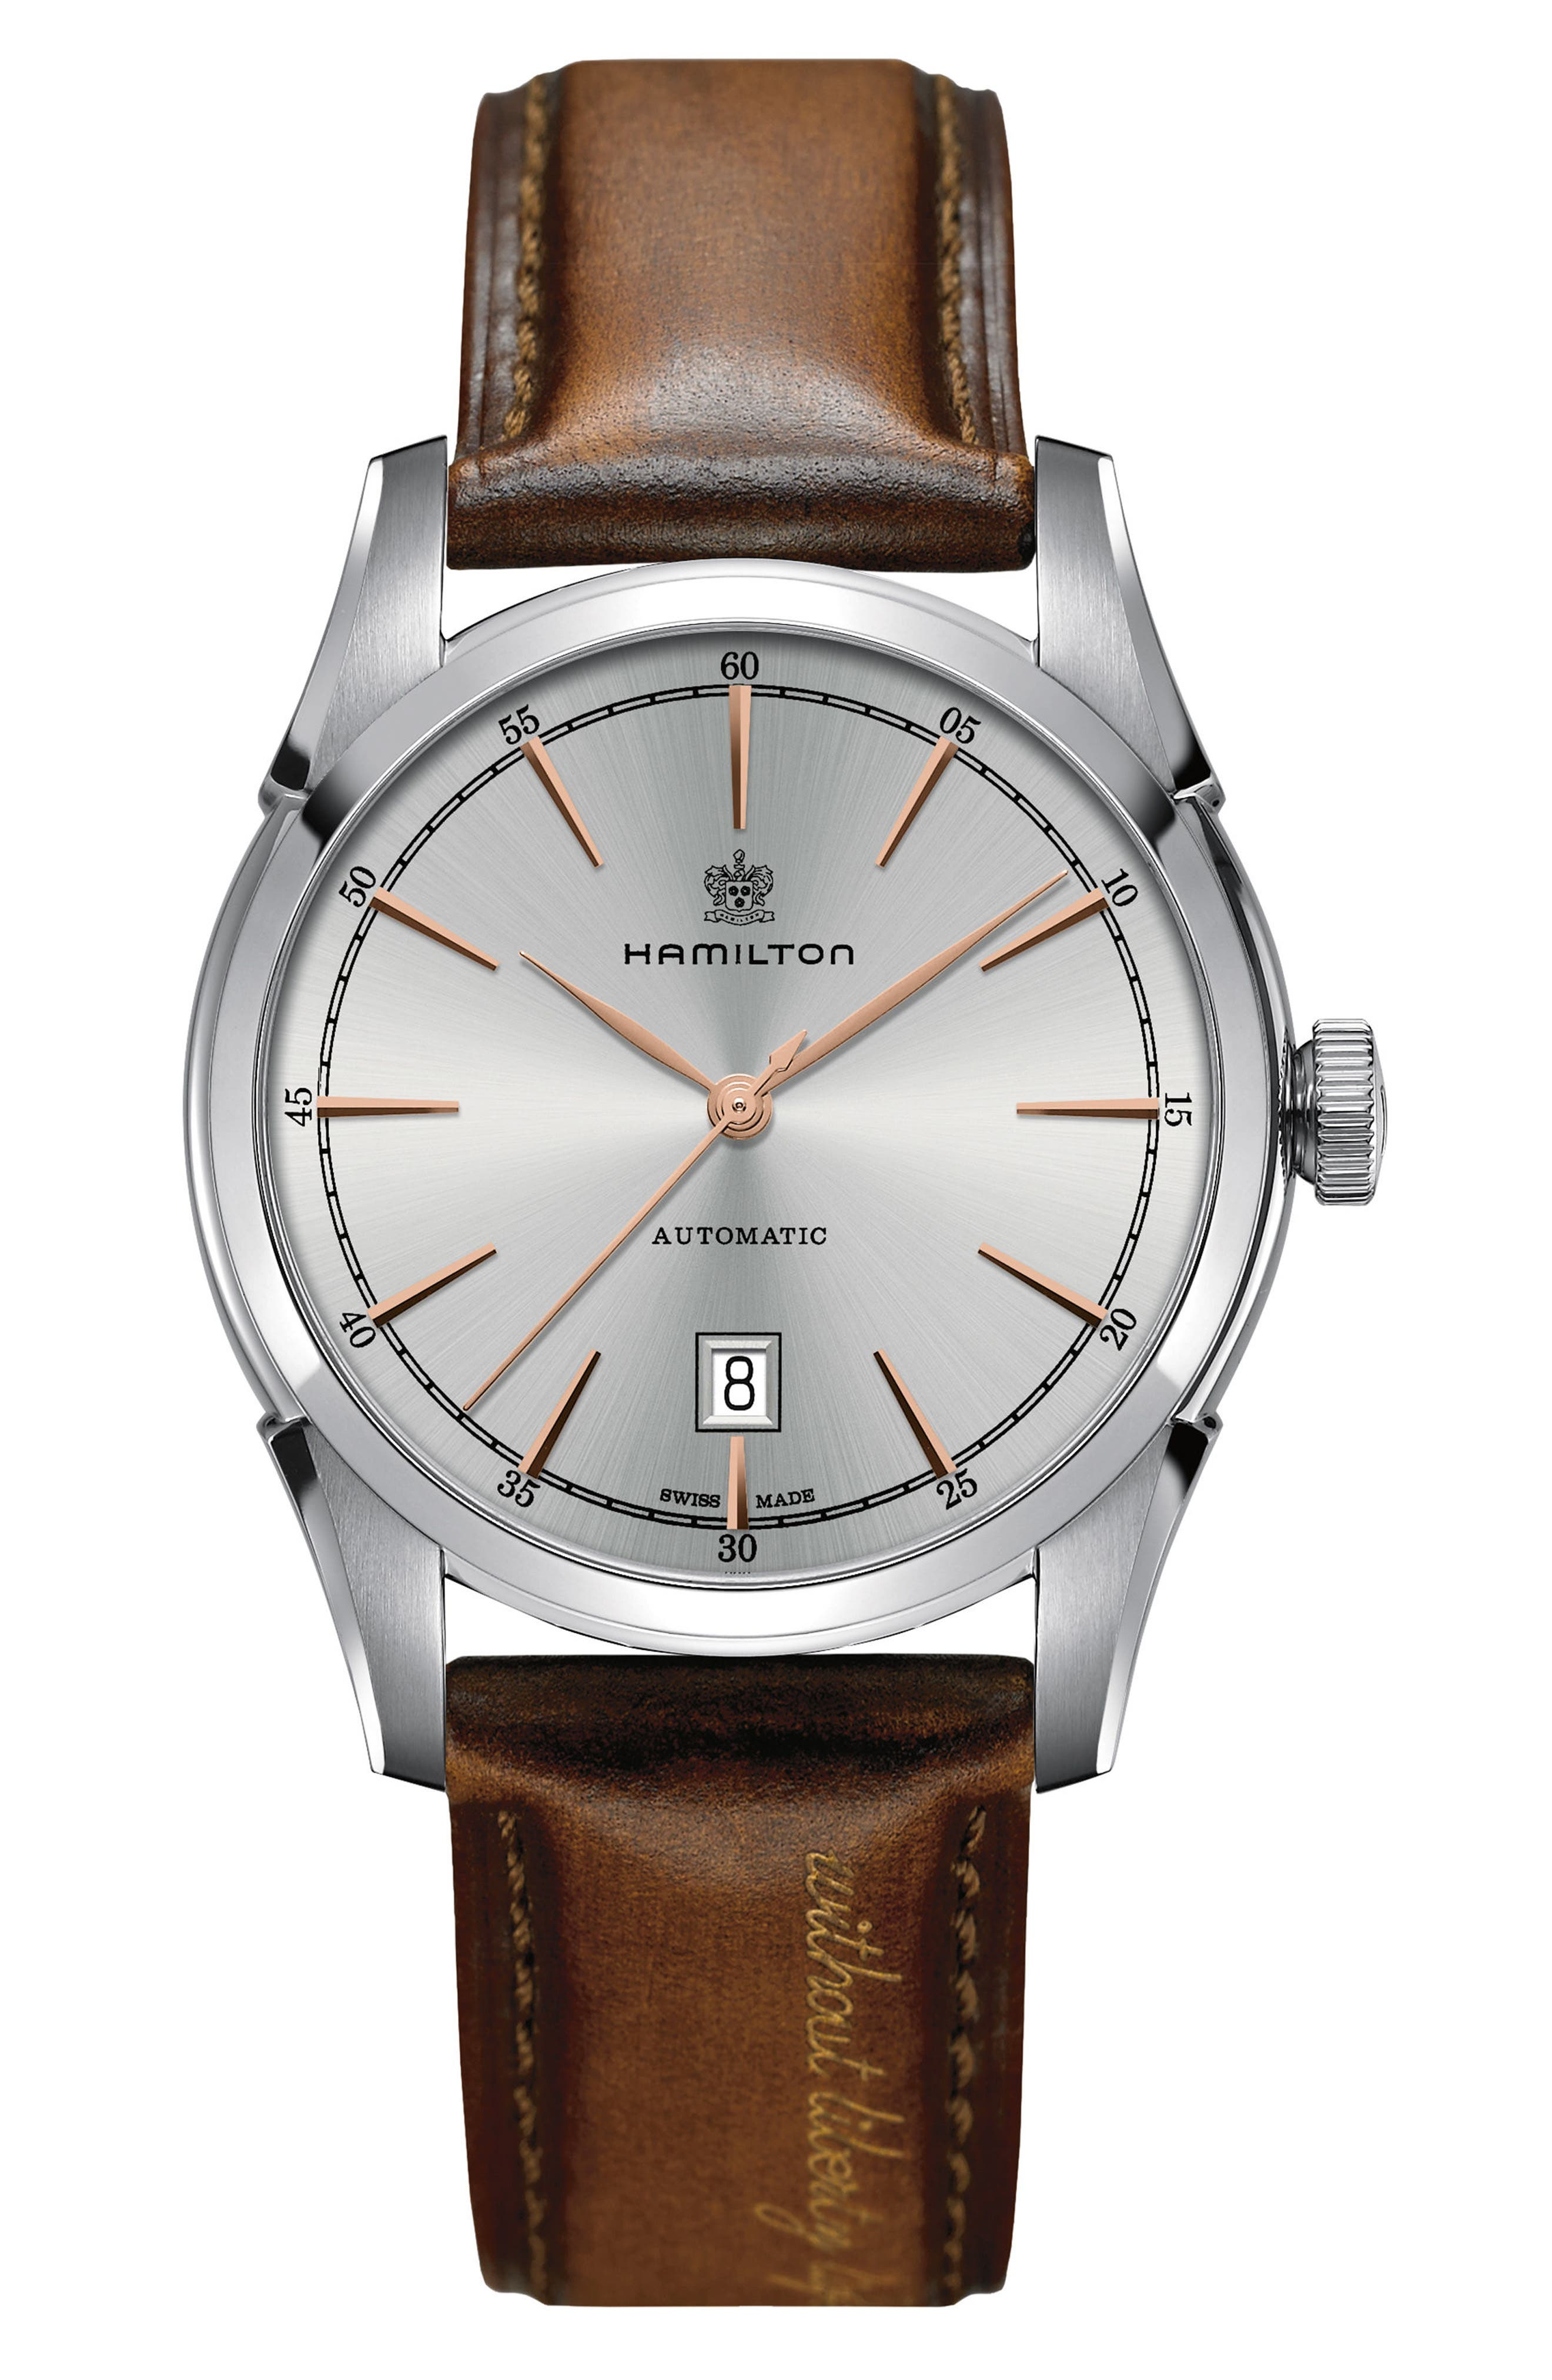 HAMILTON American Classic Automatic Leather Strap Watch, 42mm